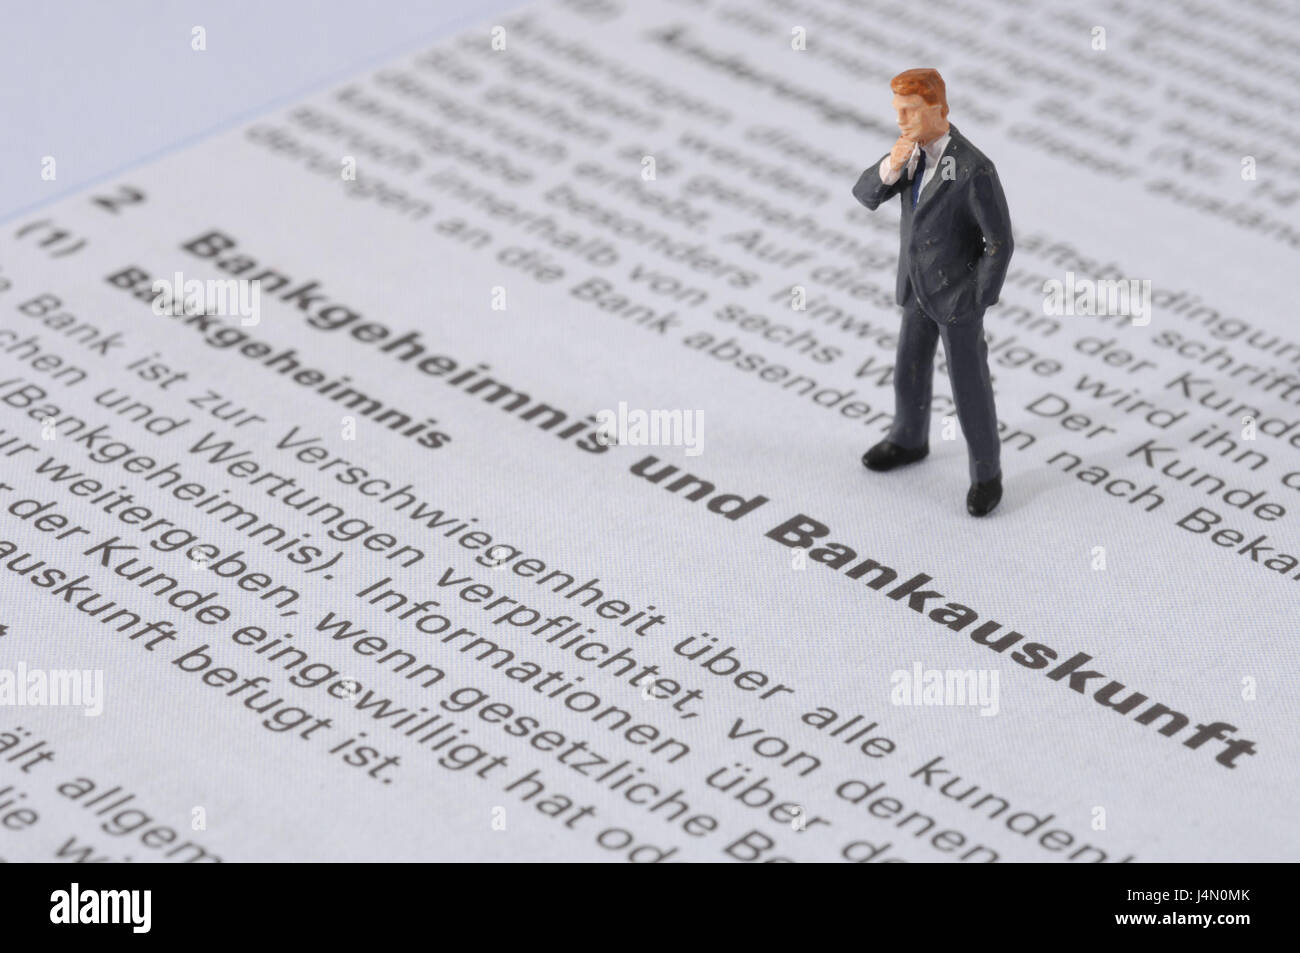 Form, GTCT, banking secrecy, bank reference, character, icon, banks, contract, terms of business, clauses, small - Stock Image